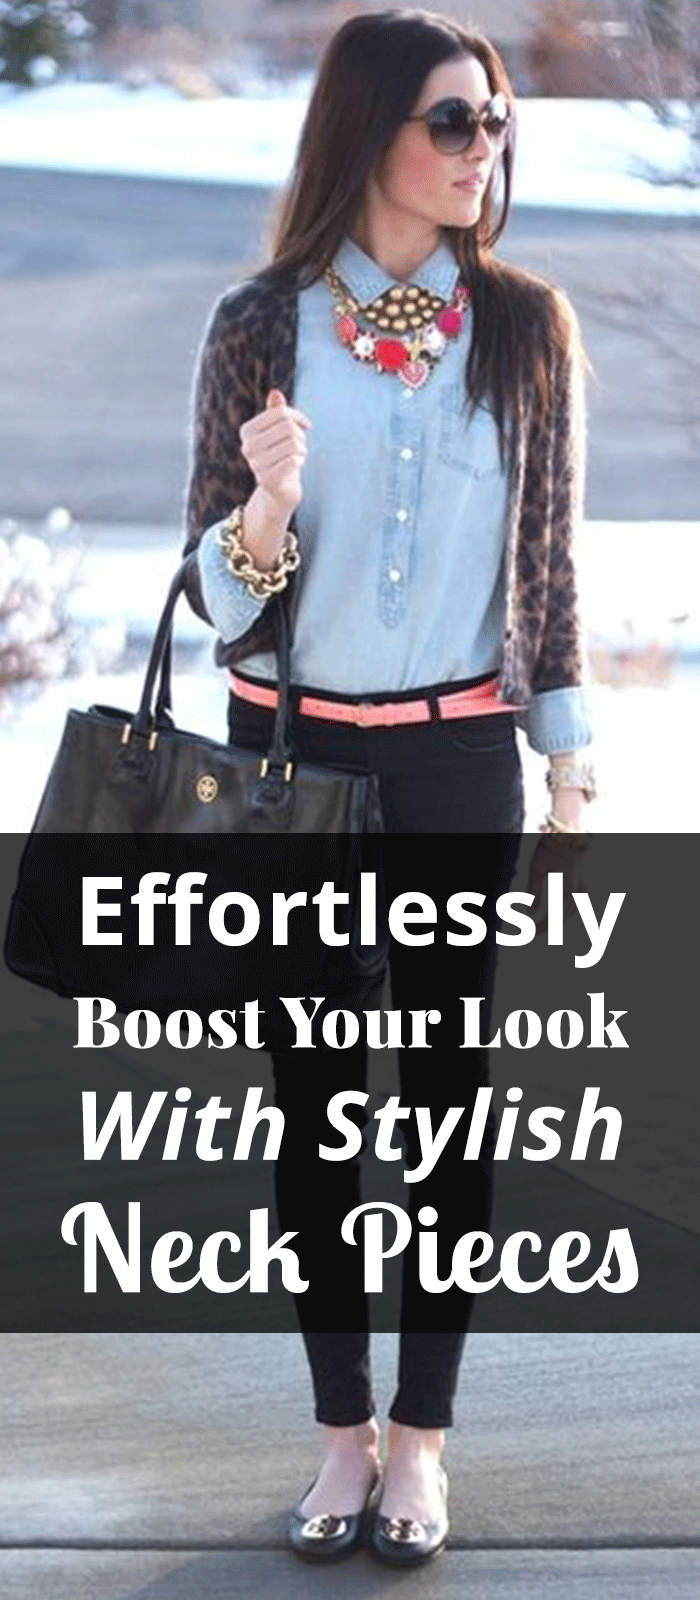 Effortlessly Boost Your Look With Stylish Neck Pieces